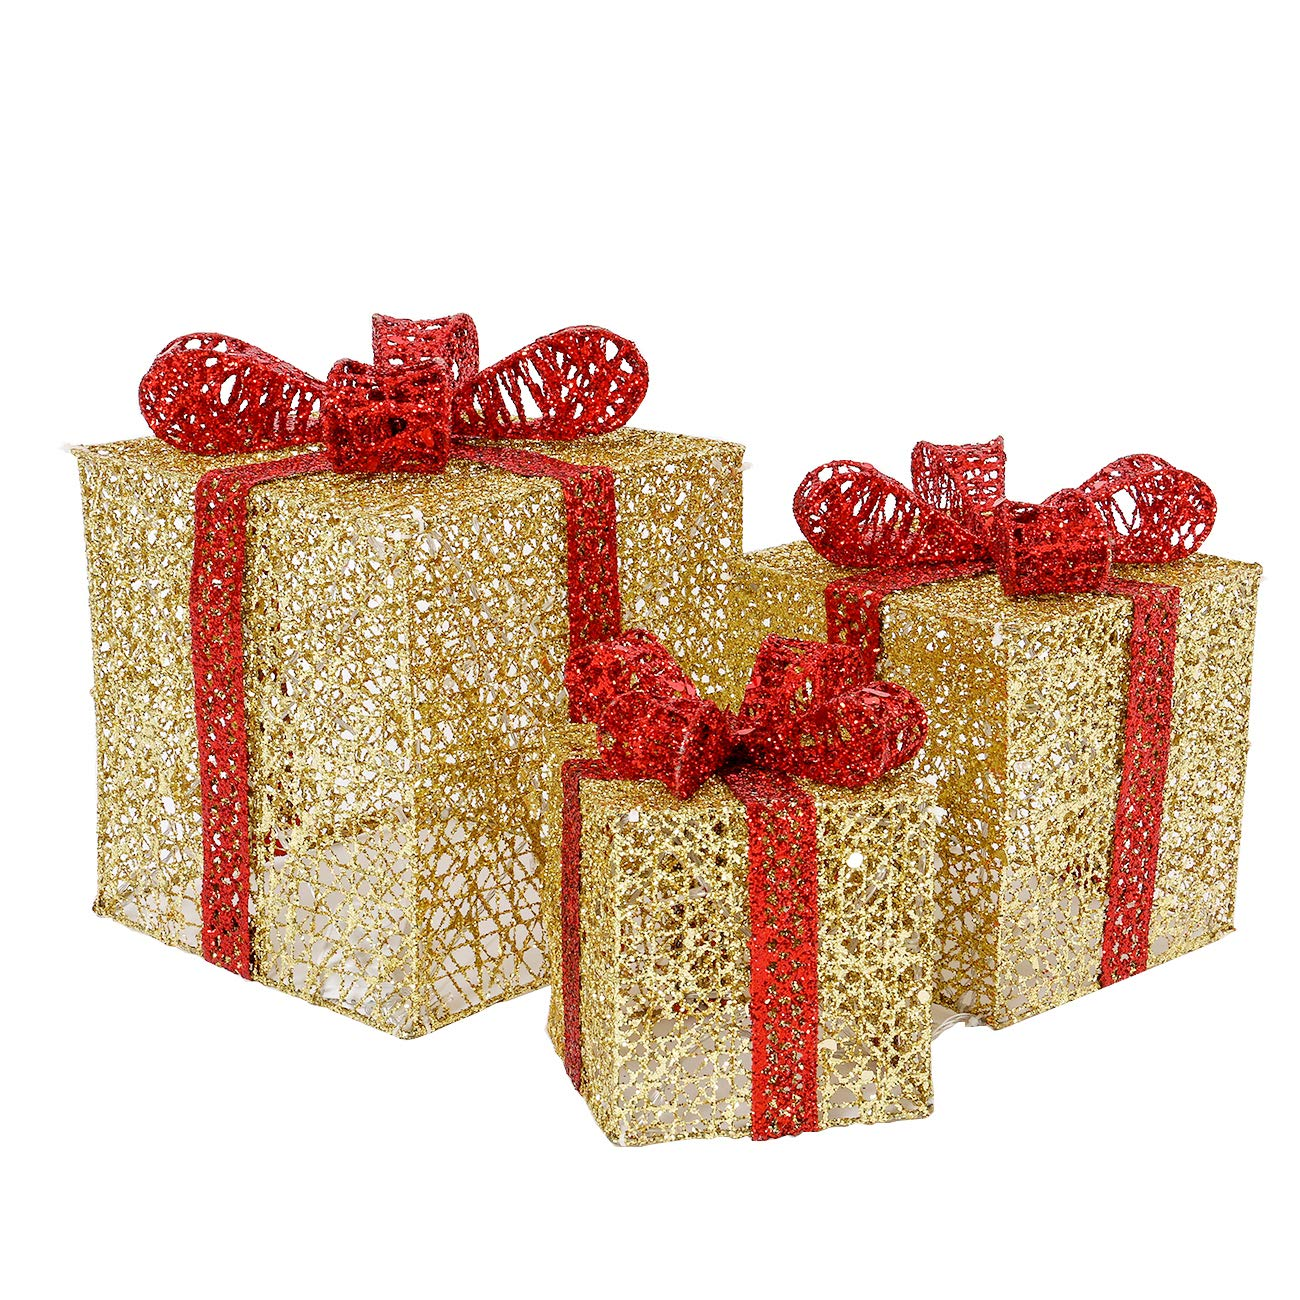 Gold Weddings Yard Home Holiday Art Decorations Sunnyglade Set of 3 Christmas Lighted Gift Boxes with Bows Present Boxes for Christmas